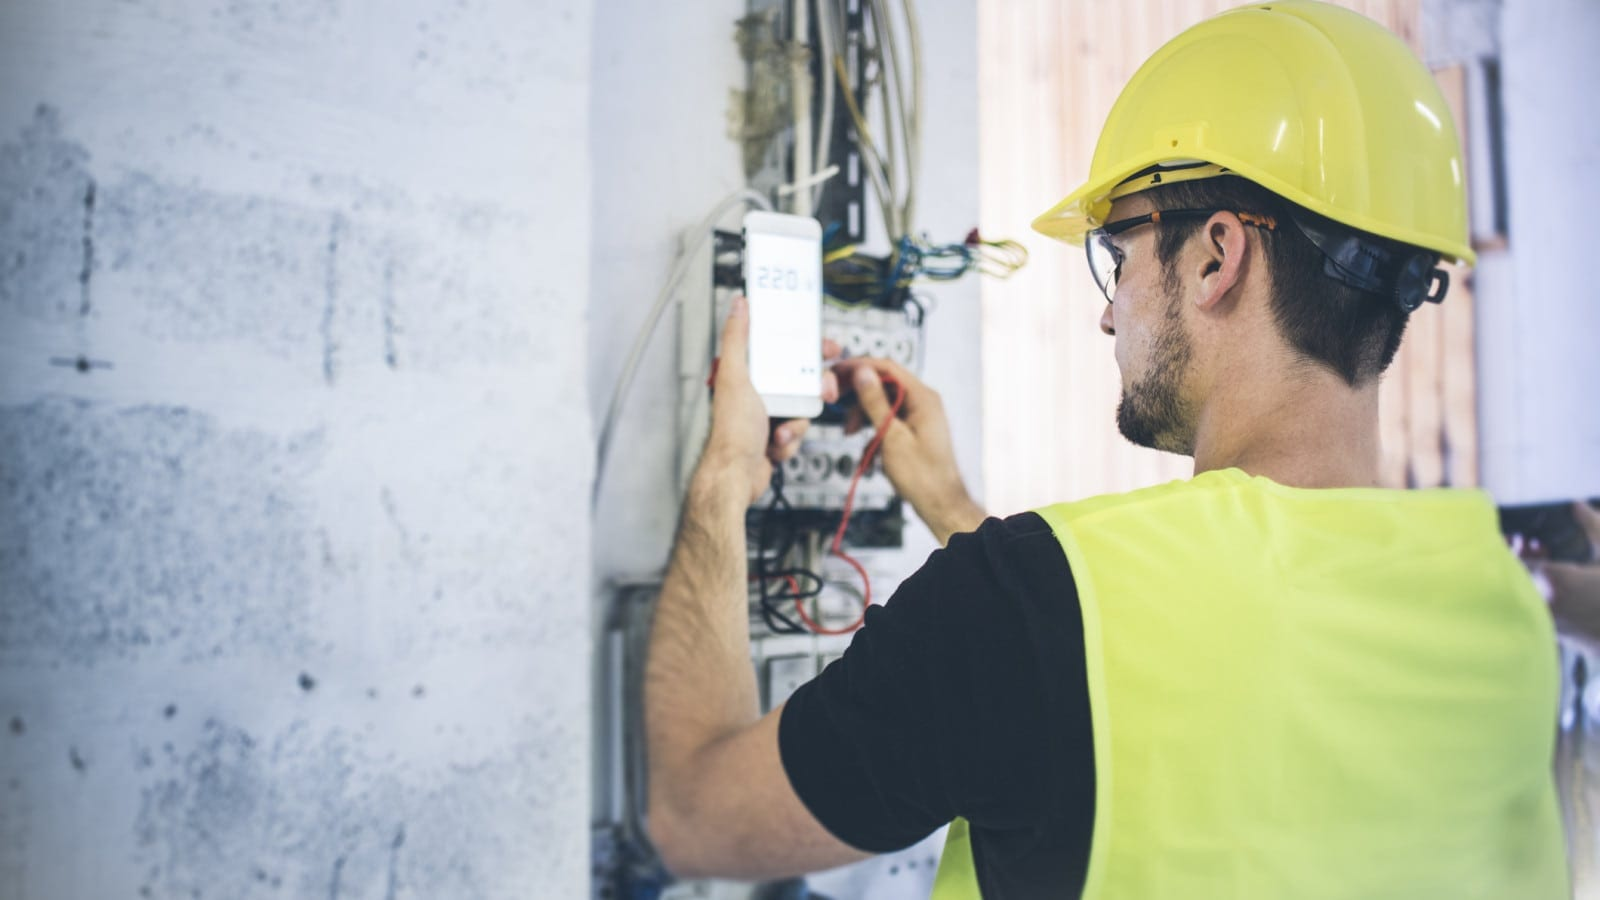 Electrician In A Hard Hat Working Outdoors Stock Photo